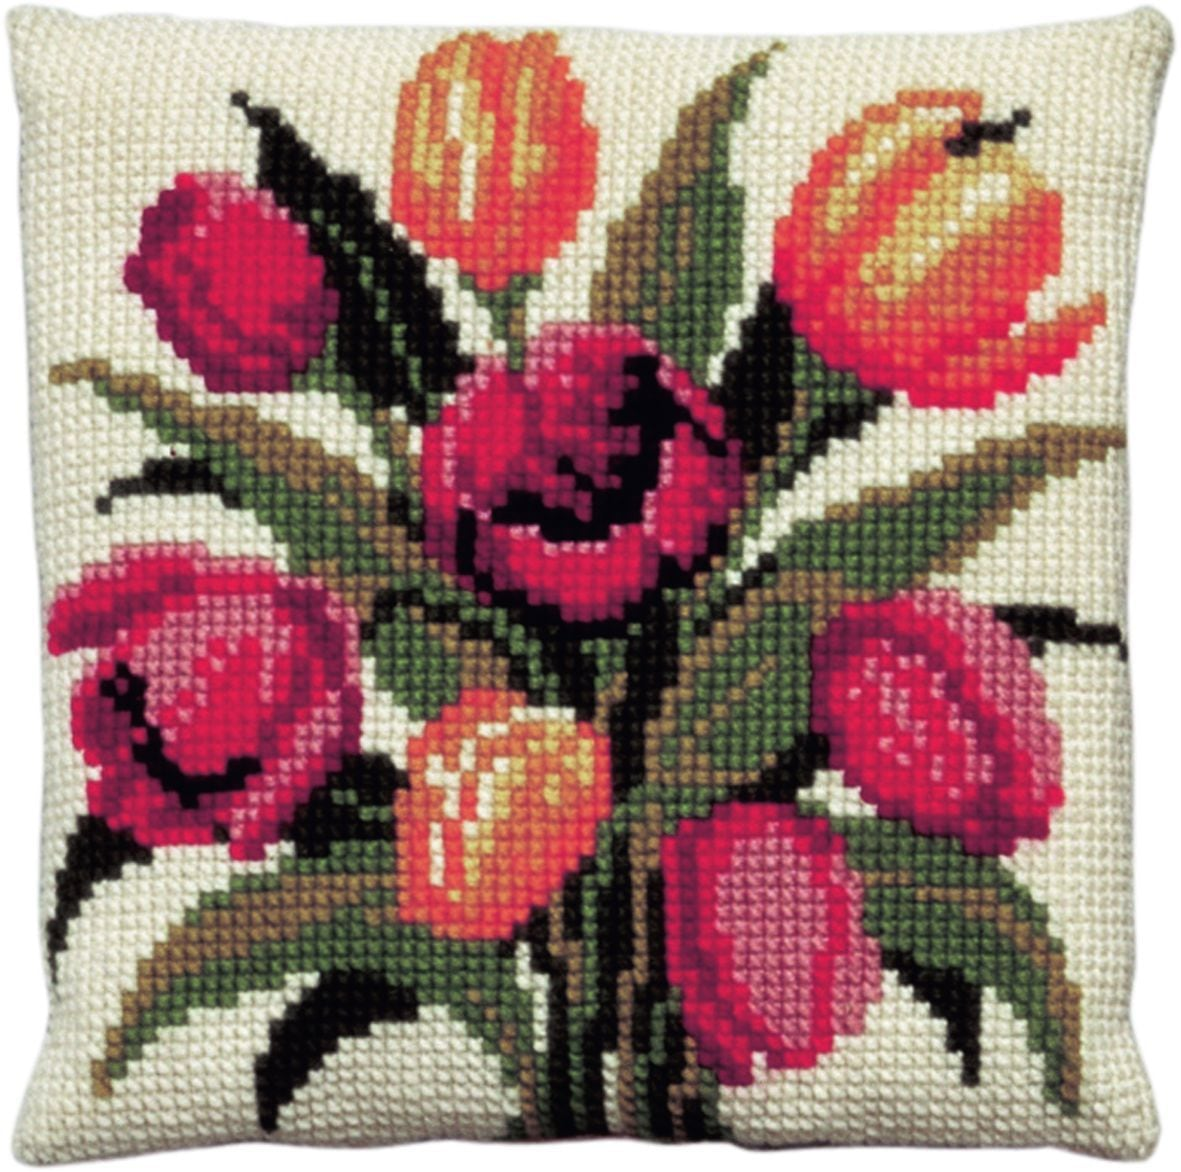 cross stitch cushion dutch tulips printed